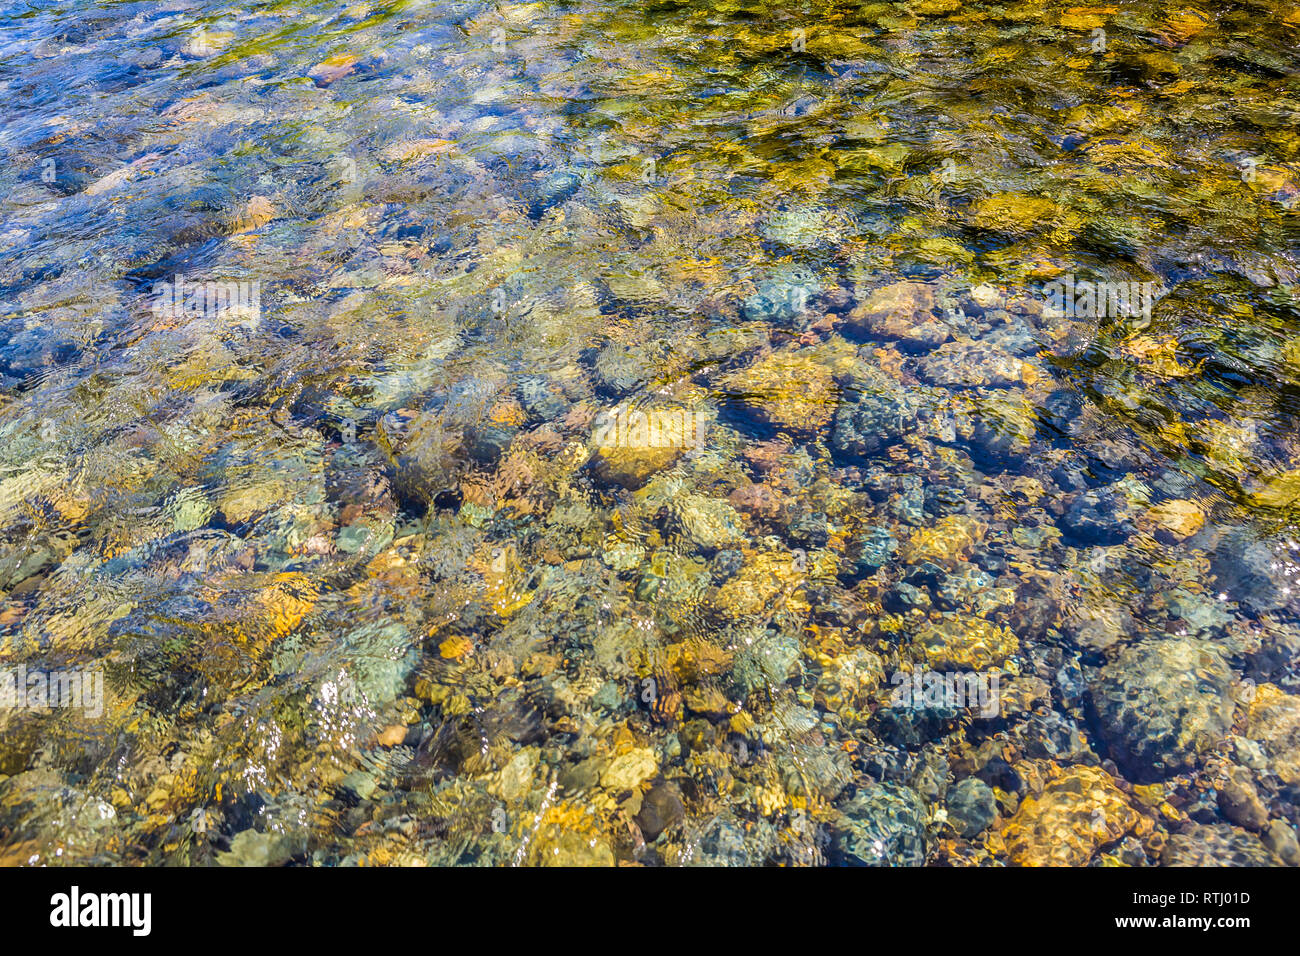 The rocky riverbed of the Cedar River in Western Washington, USA. - Stock Image